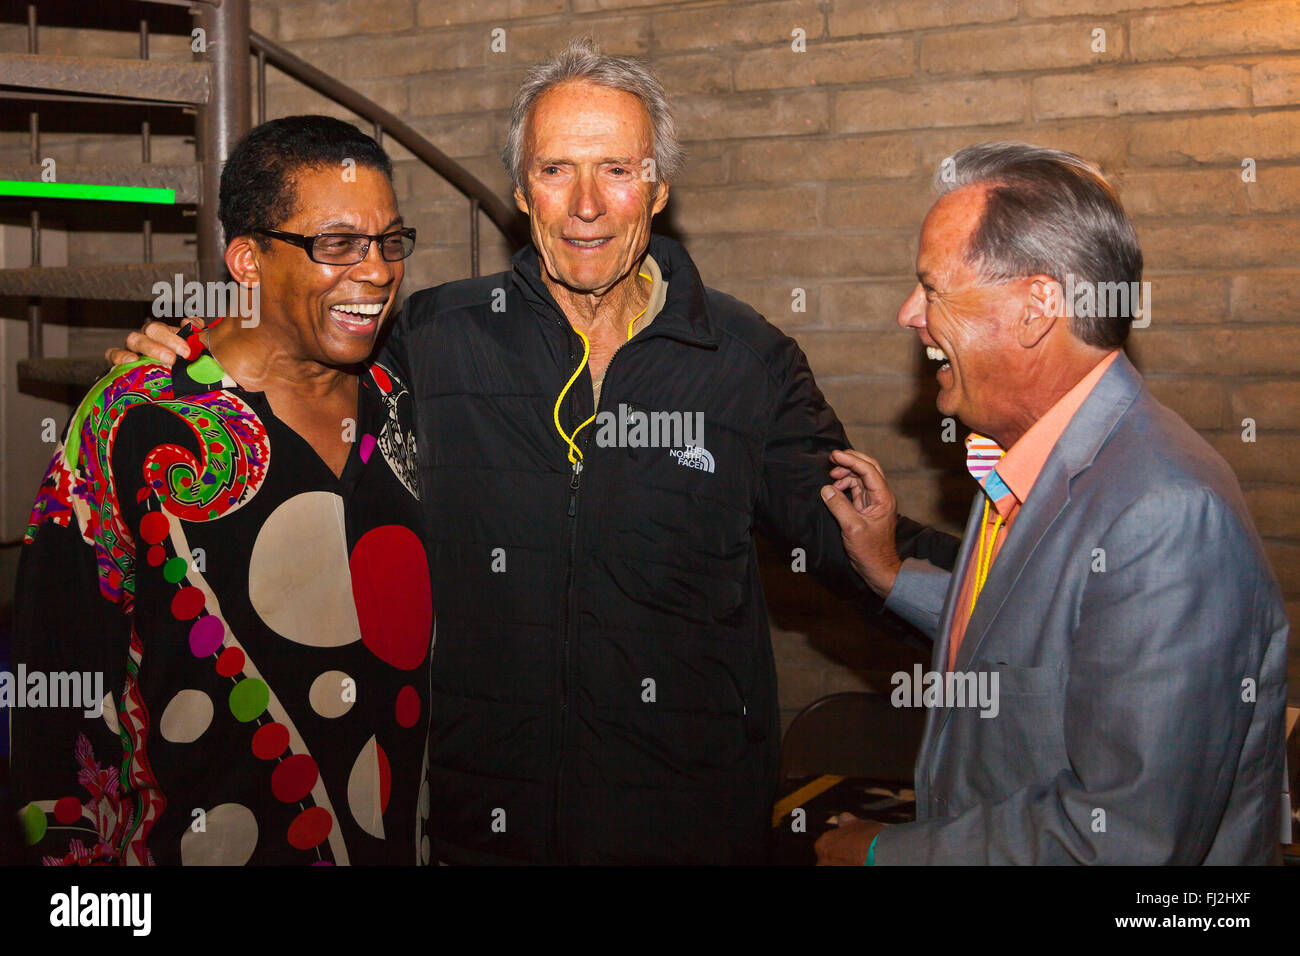 HERBIE HANCOCK backstage with CLINT EASTWOOD and TIM JACKSON at the MONTEREY JAZZ FESTIVAL - Stock Image